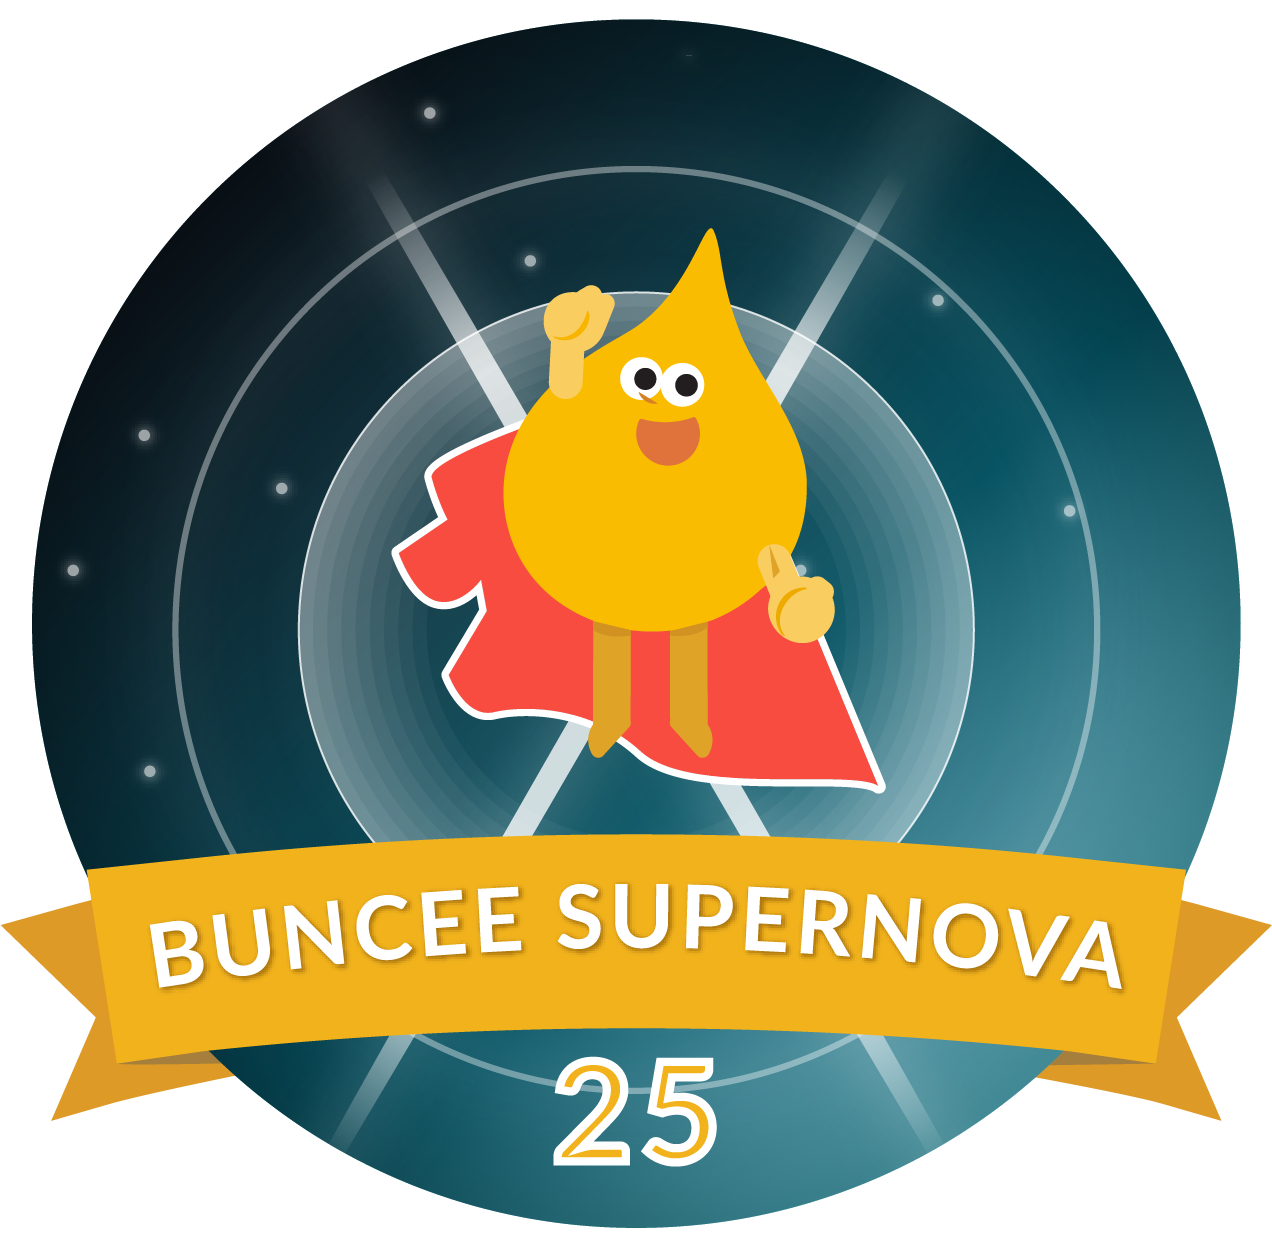 Buncee Supernova